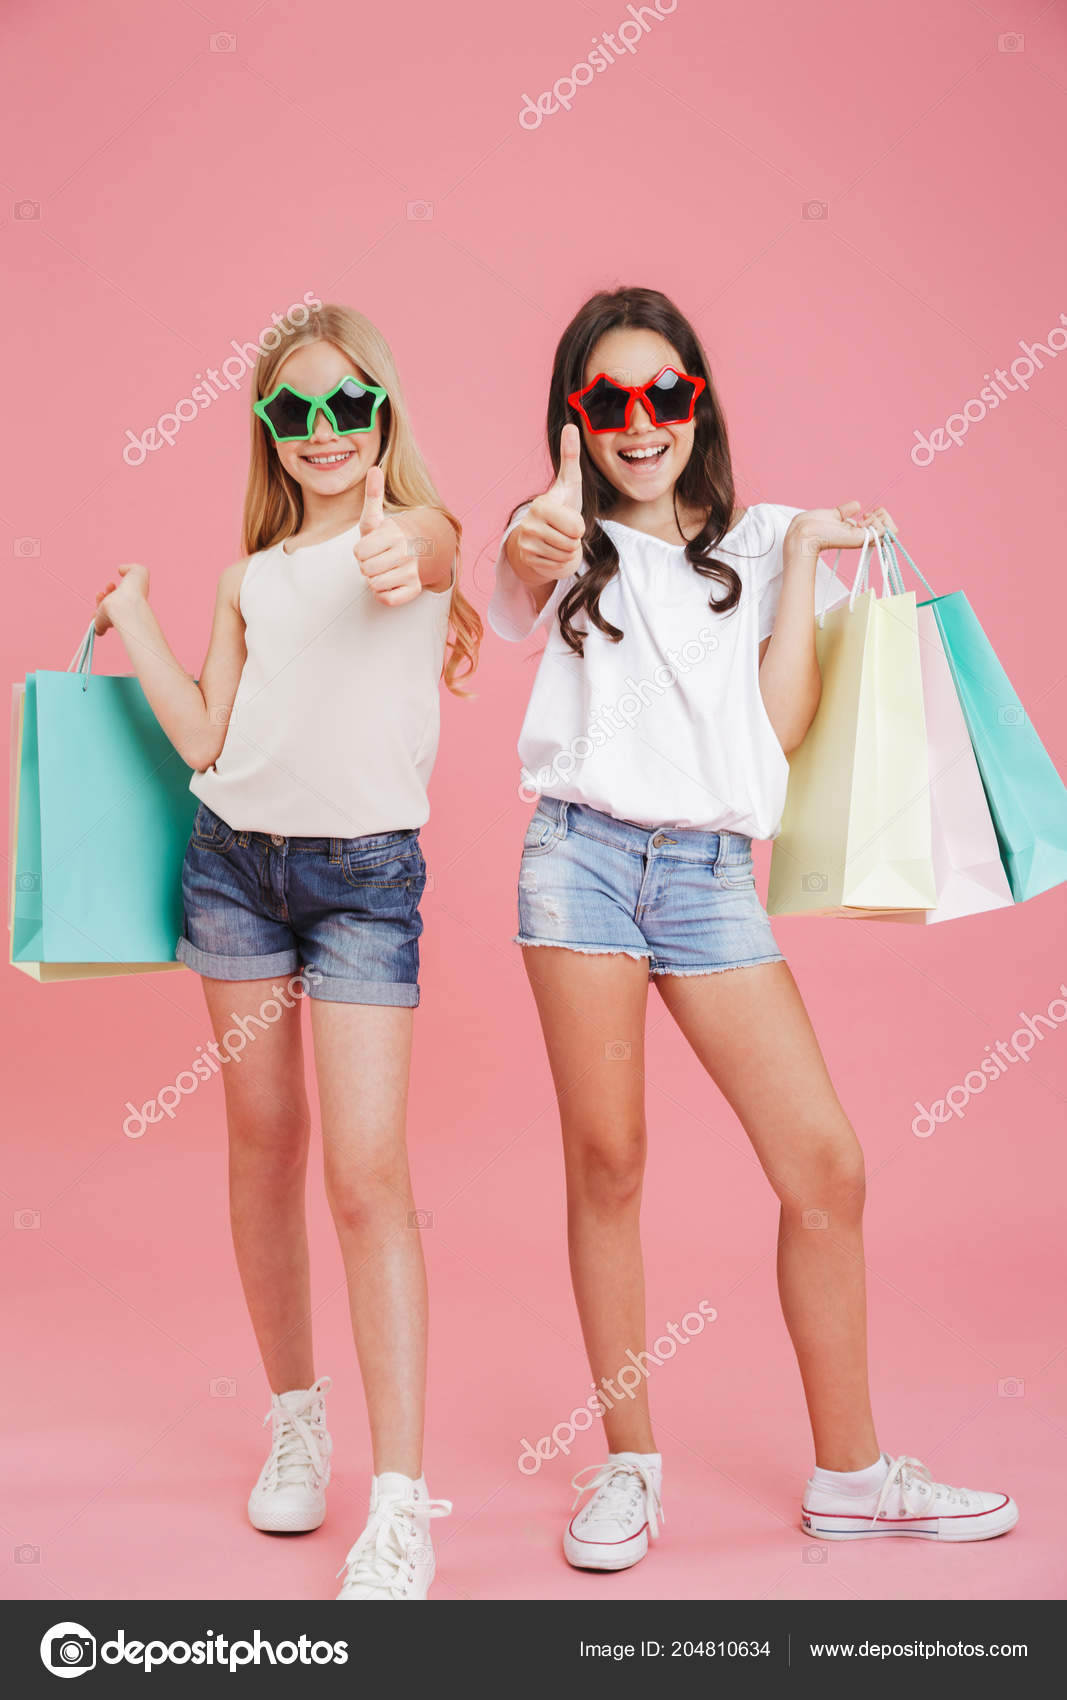 Have up shorts blonde teens charming